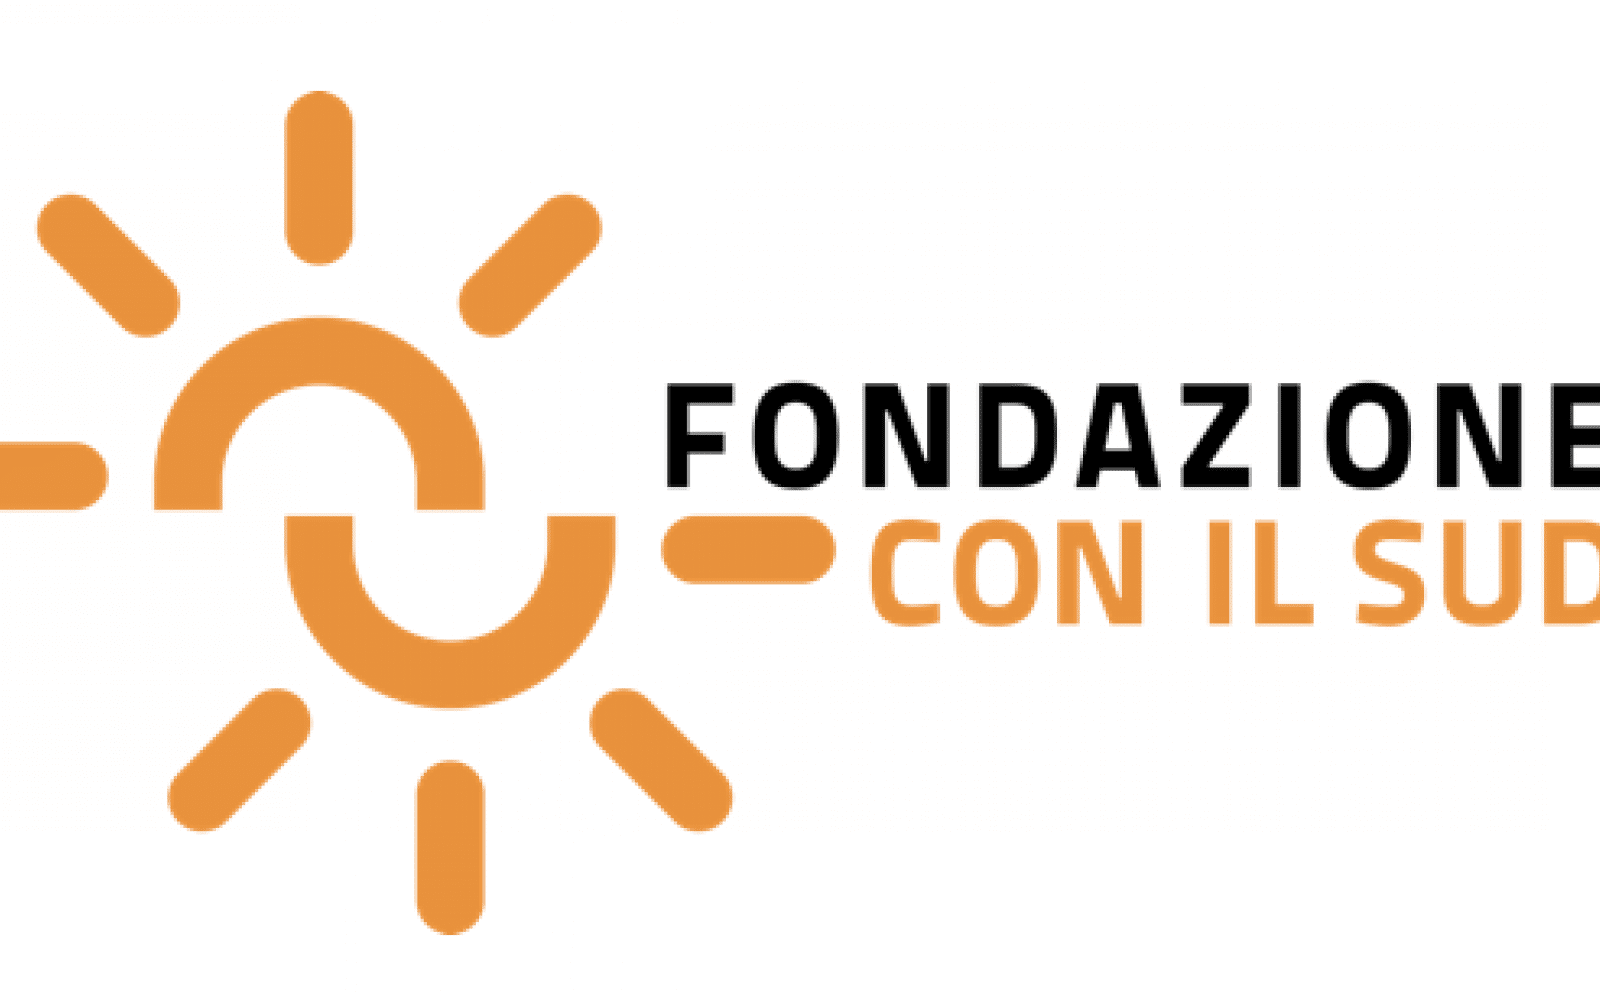 Logo of a sun split in half, with the two half circles of the sun not meeting together. Next to it the word Fondazione in Black, and Con il Sud in orange